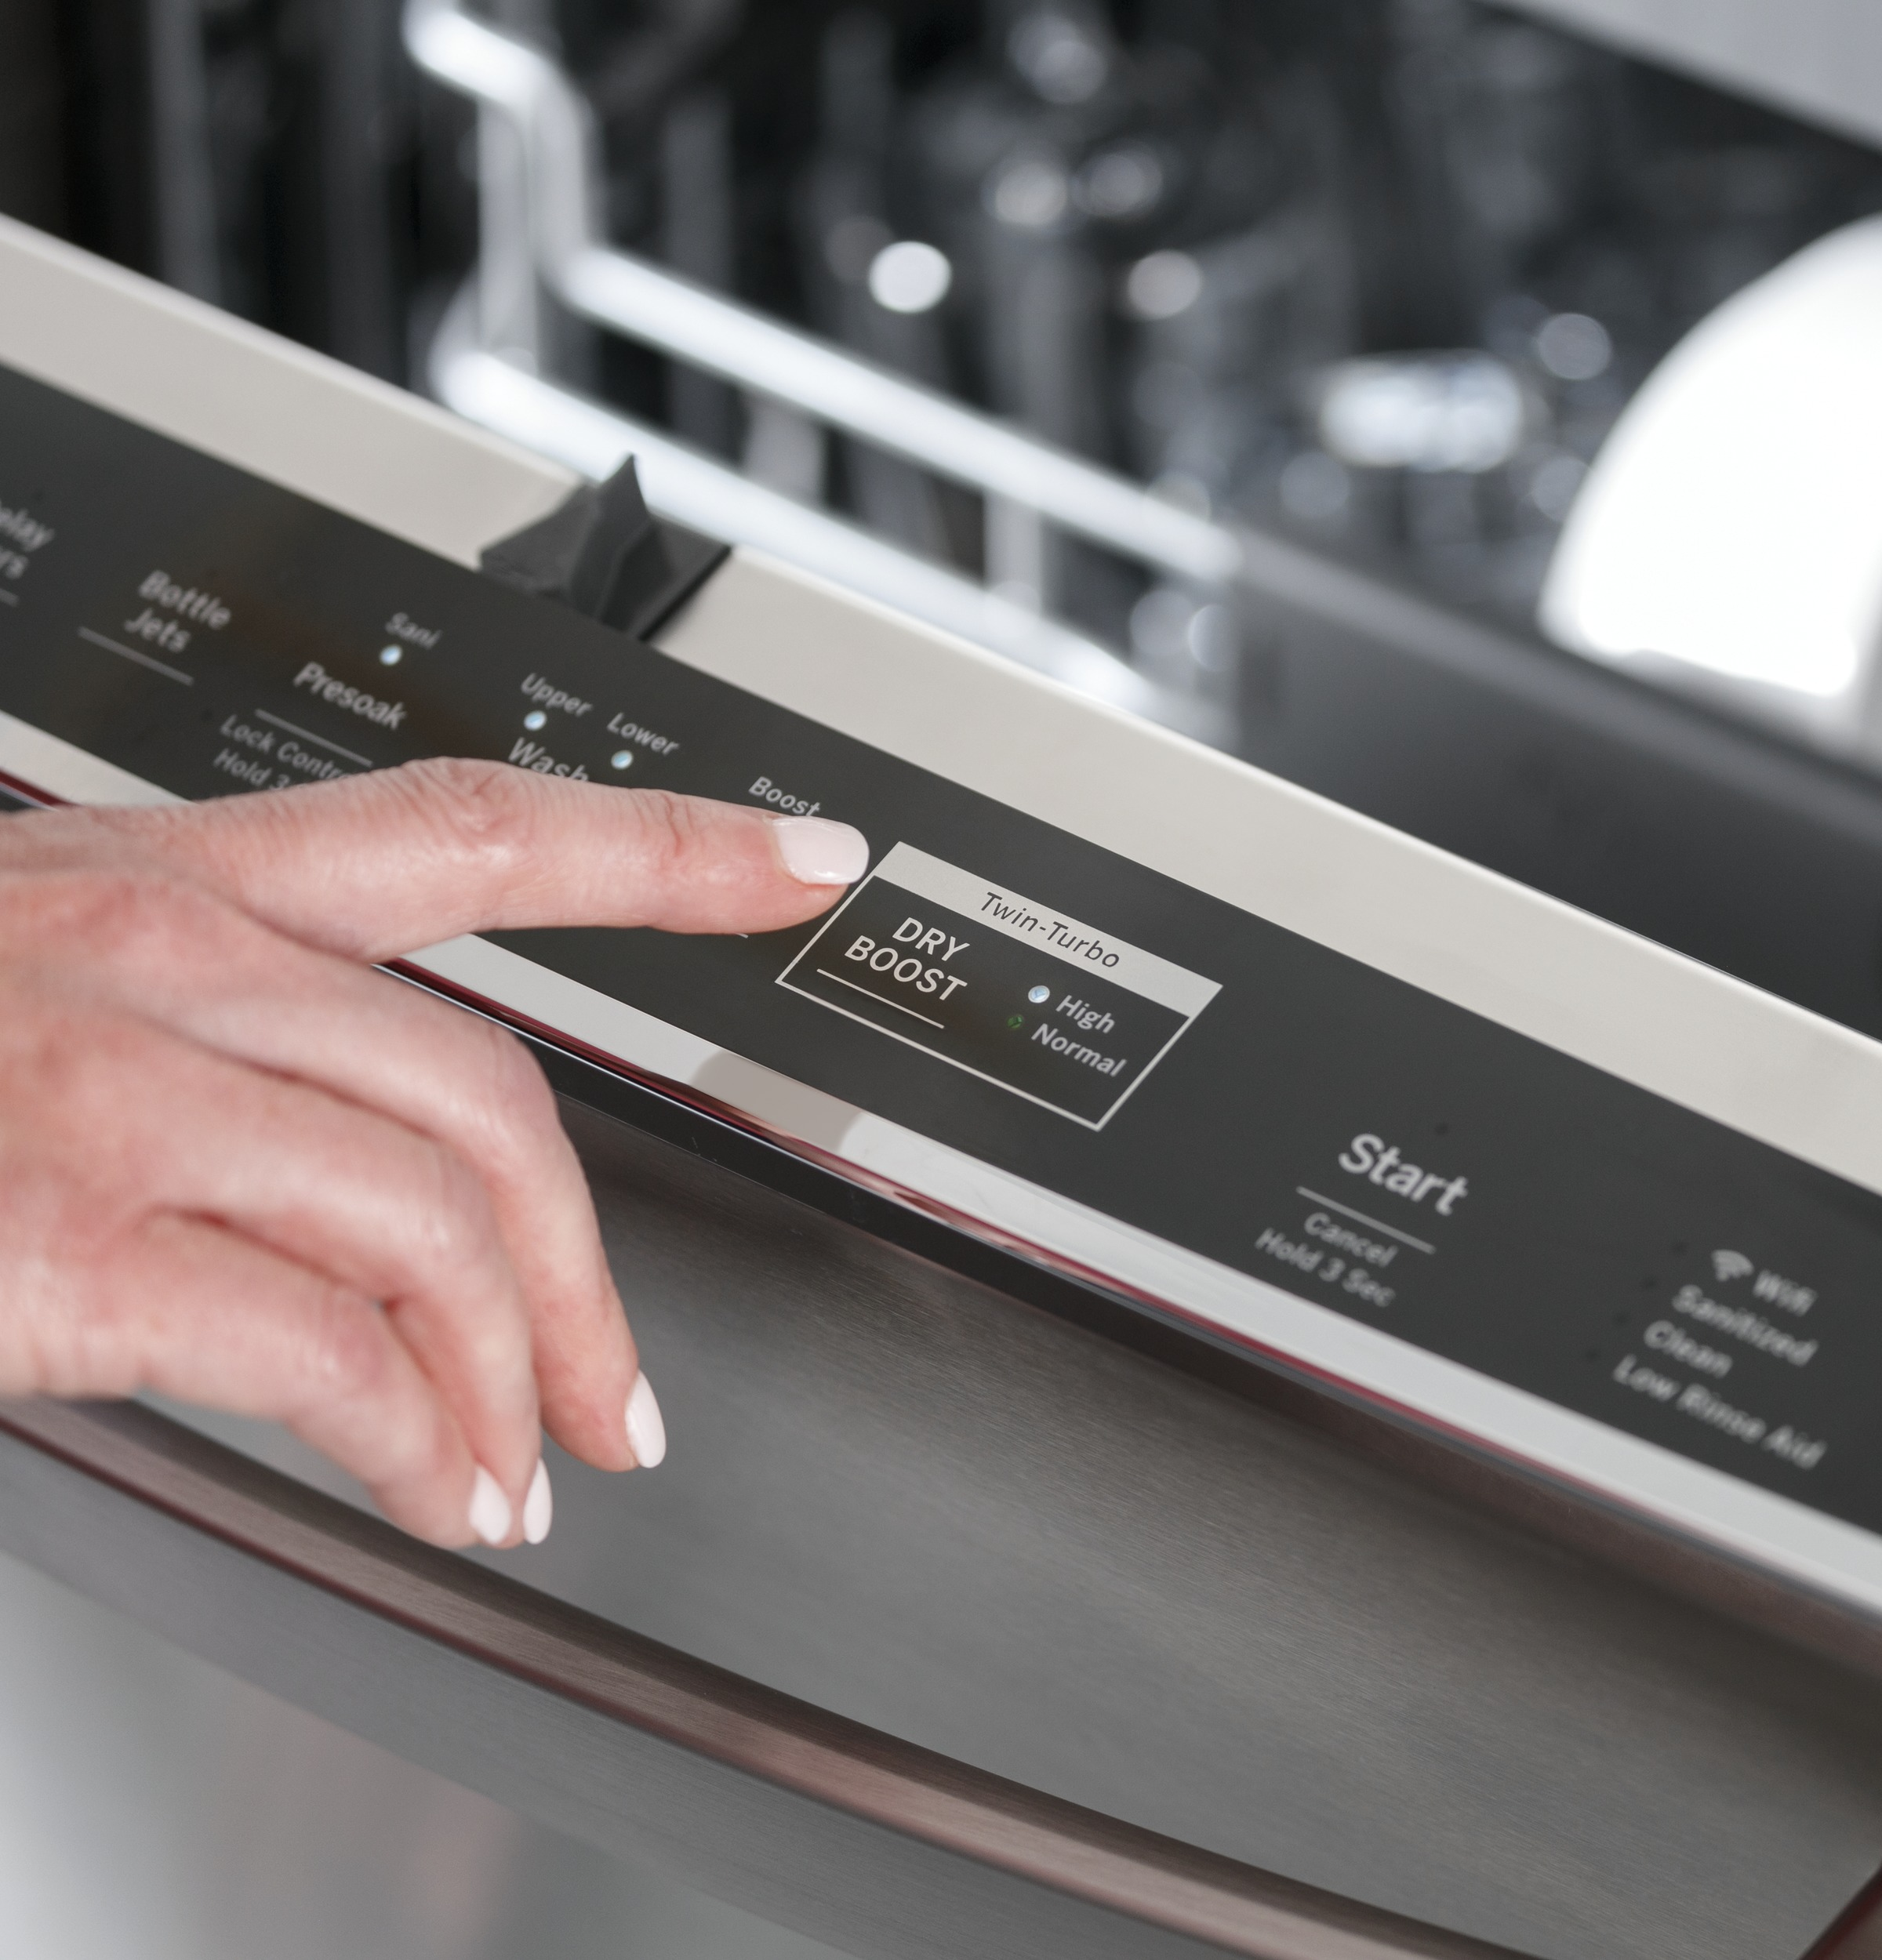 Model: PDT785SYNFS | GE Profile GE Profile™ Stainless Steel Interior Dishwasher with Hidden Controls